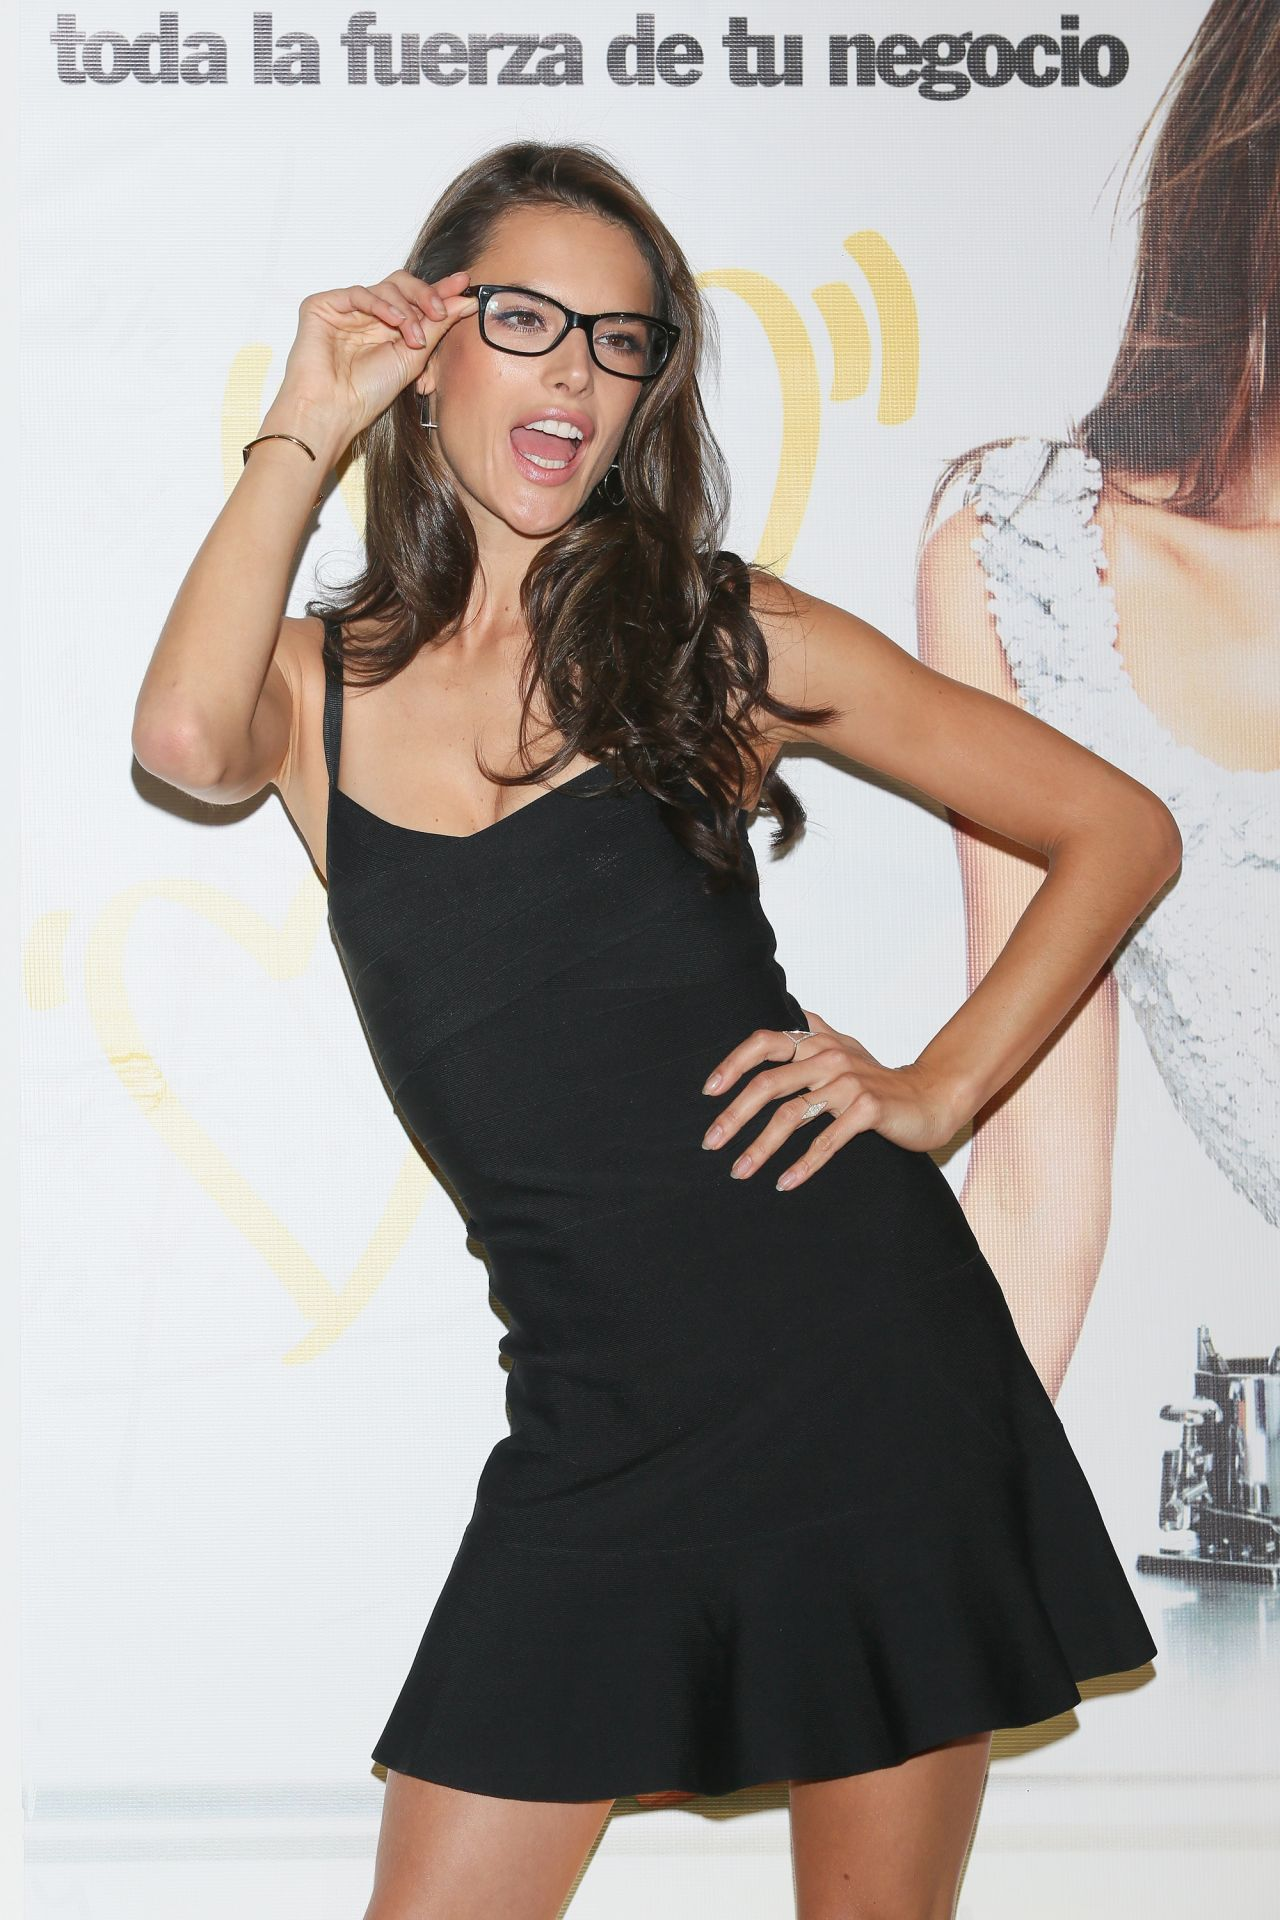 Alessandra Ambrosio at KIO Networks Campaign Promotion in Mexico City - December 2013